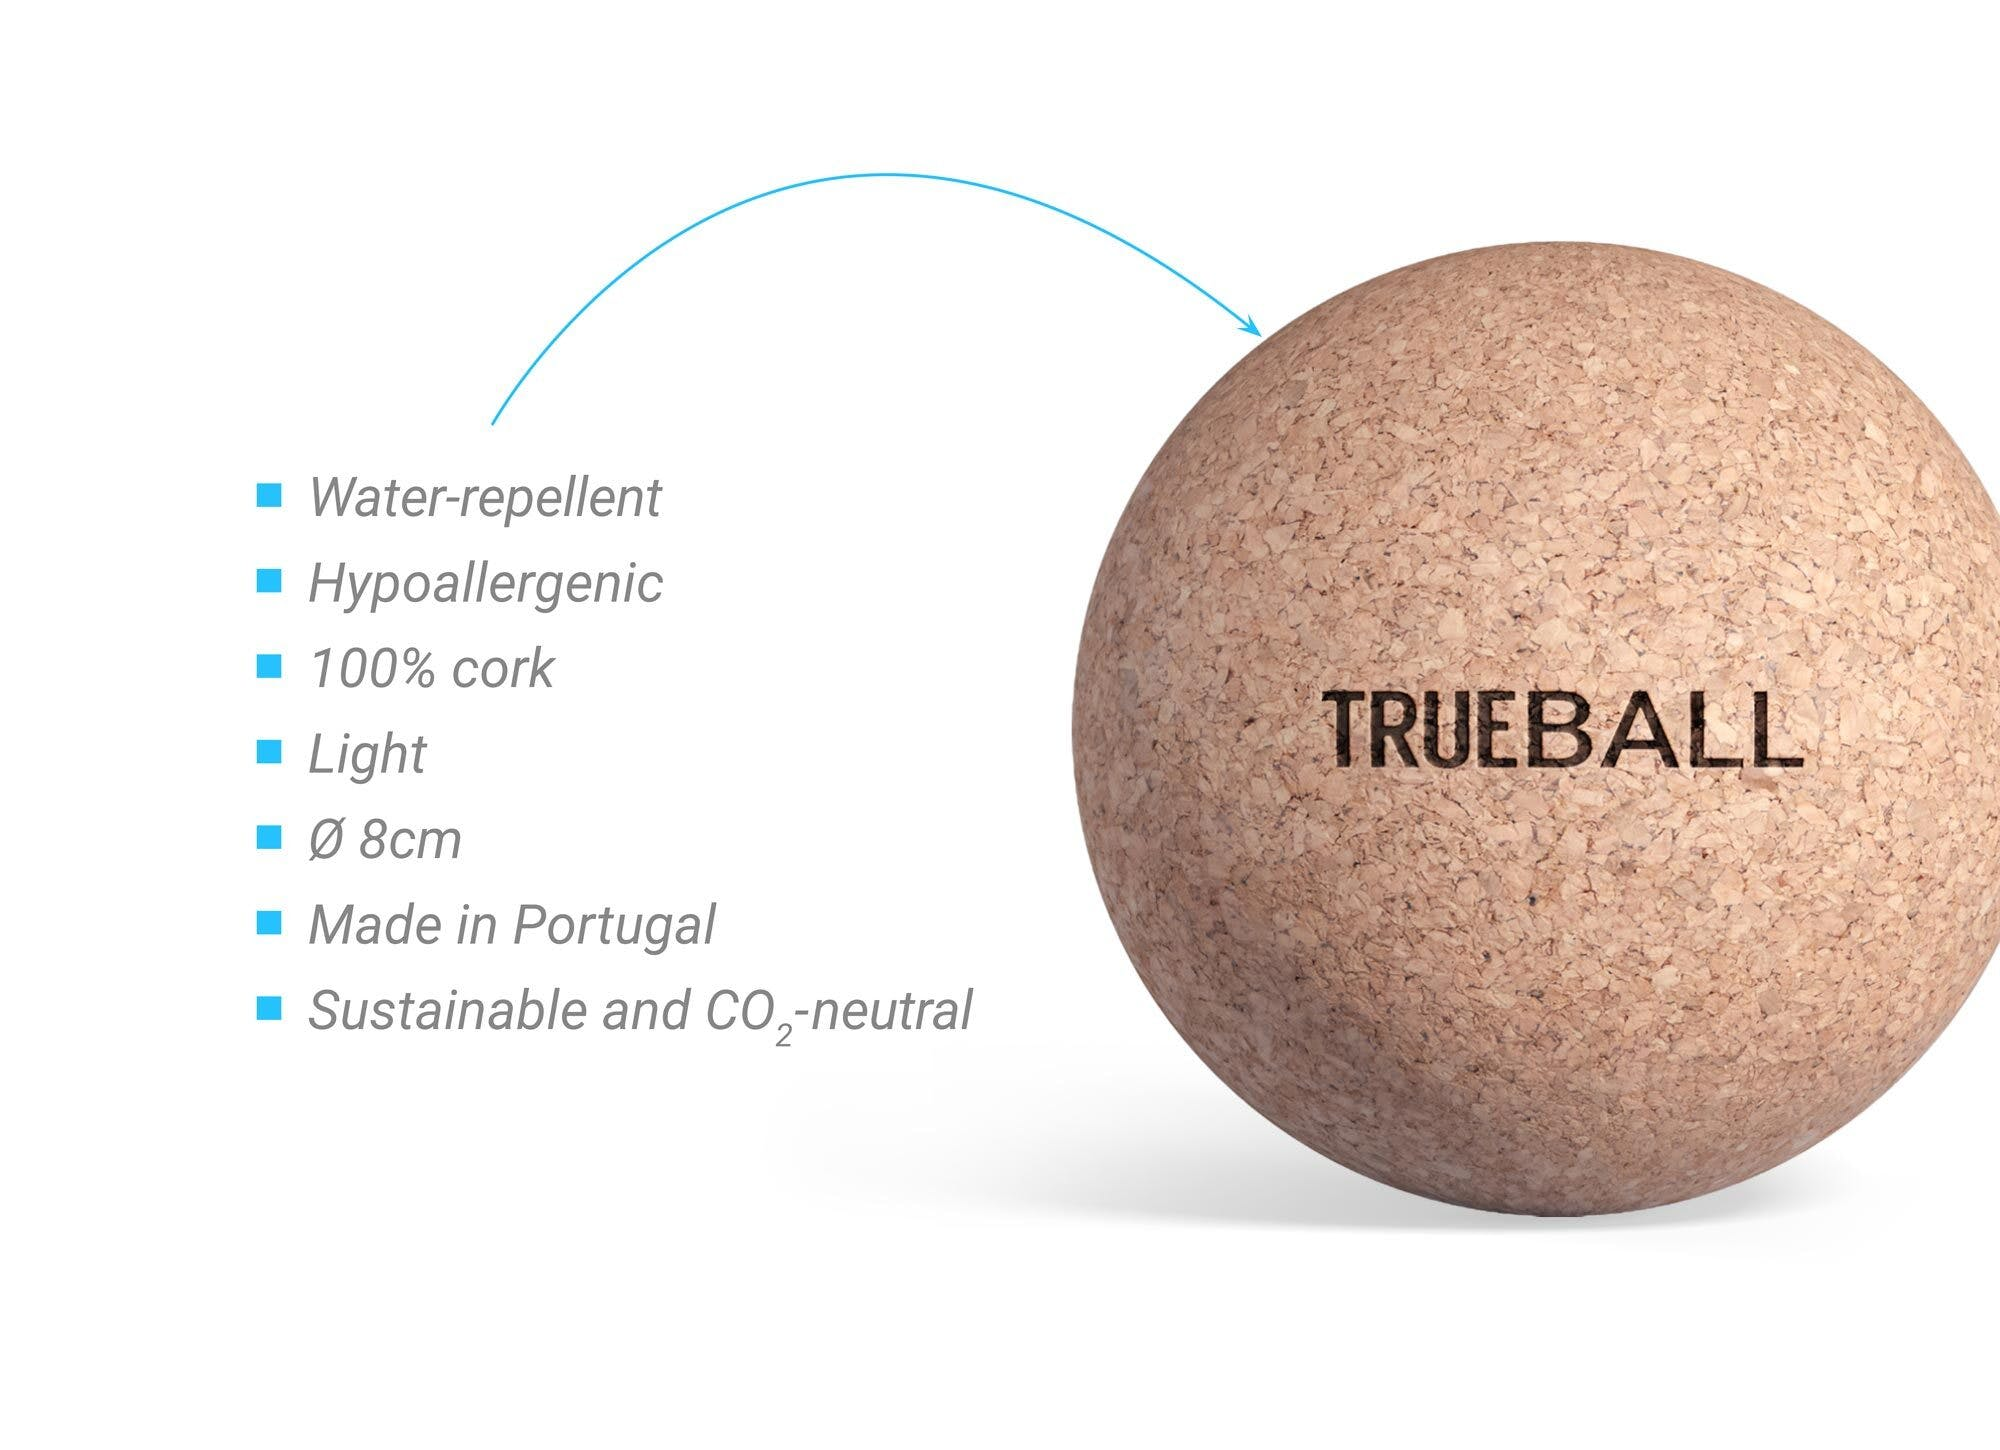 Attributes Trueball